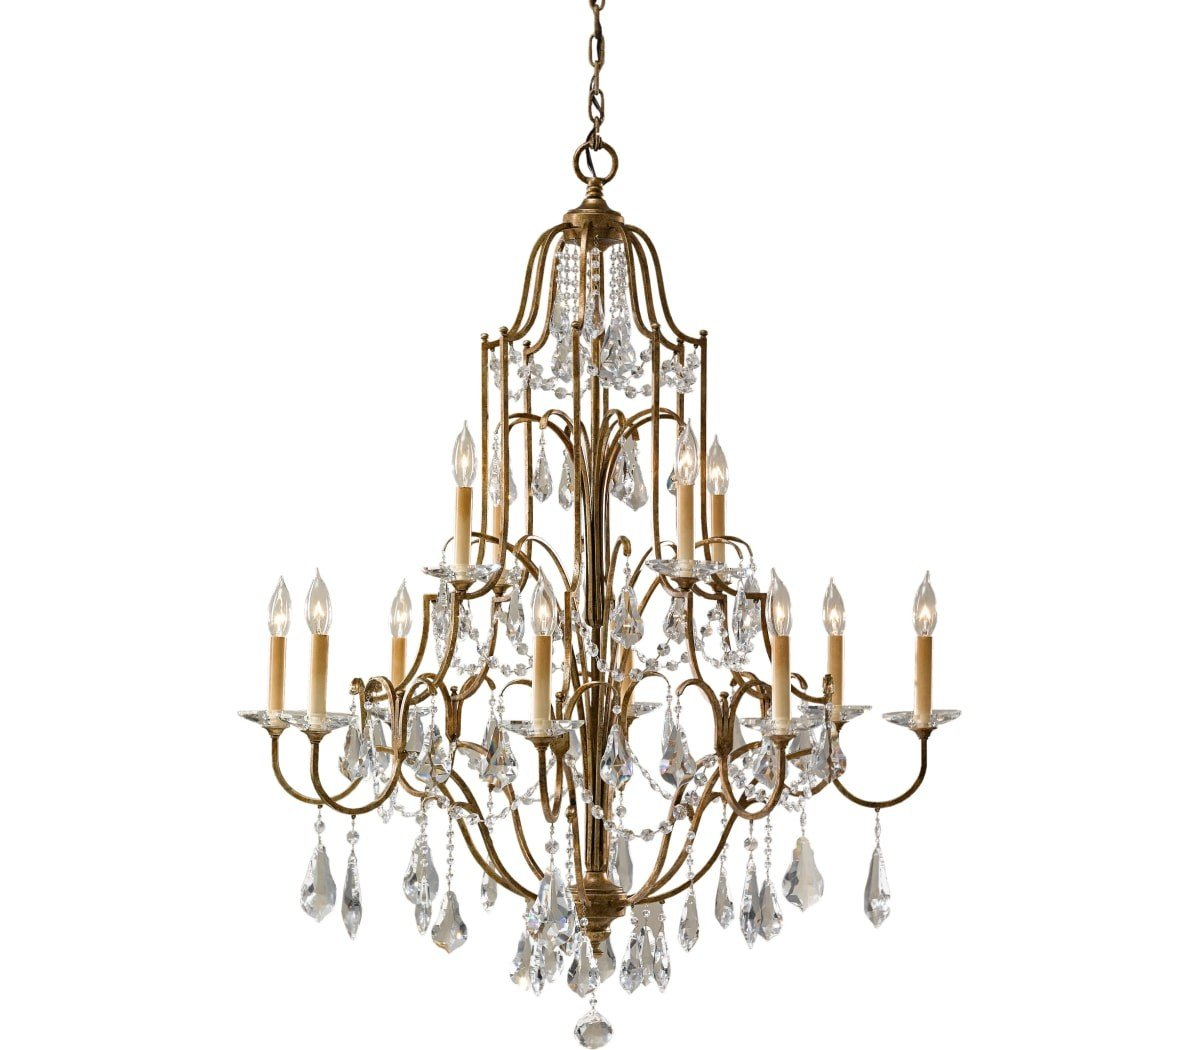 murray feiss valentina feiss-valentina-chandelier-1